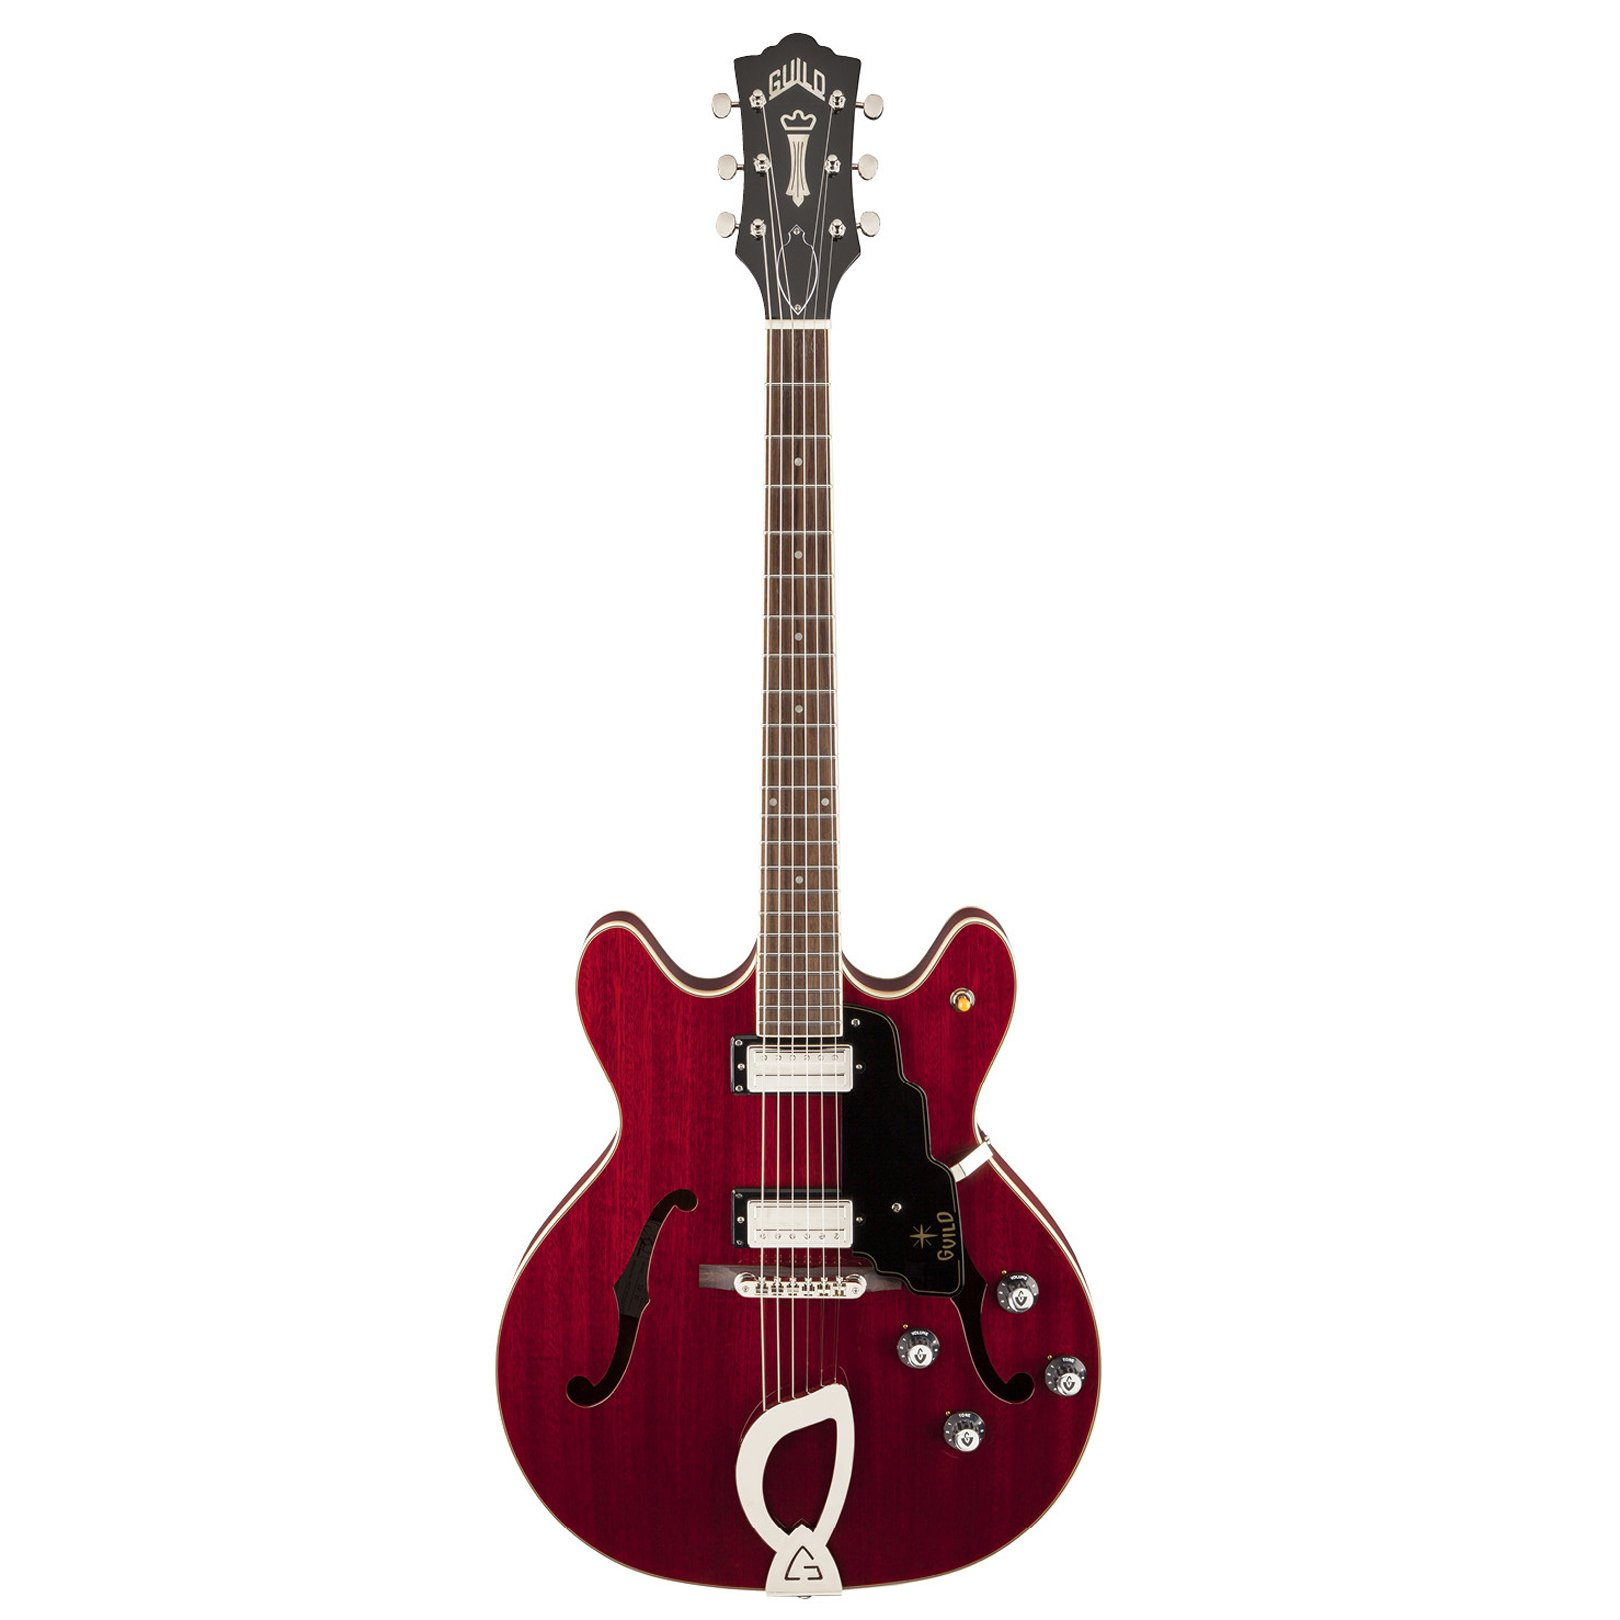 Cheap Guild Starfire IV Semi-Hollow Body Electric Guitar with Case (Cherry Red) Black Friday & Cyber Monday 2019